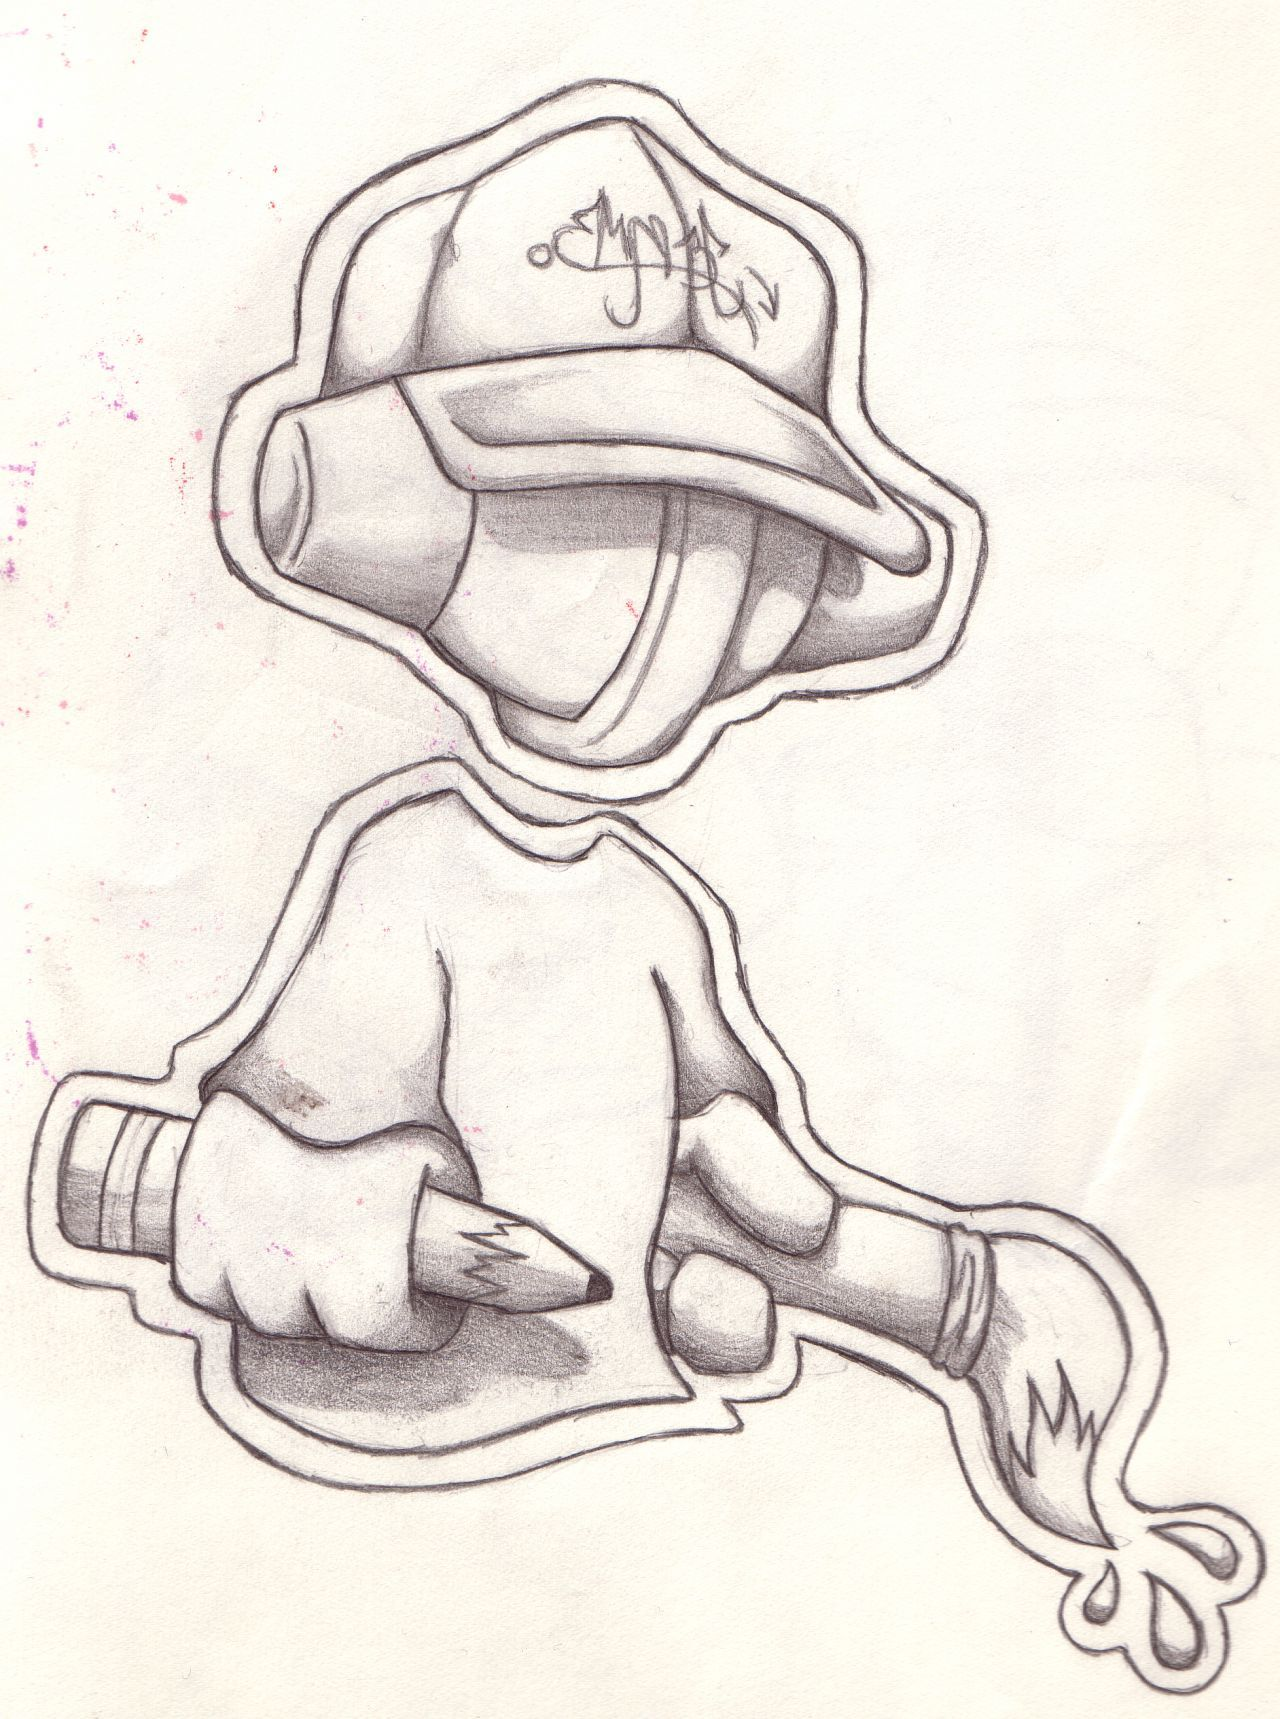 Graffiti Characters Drawings